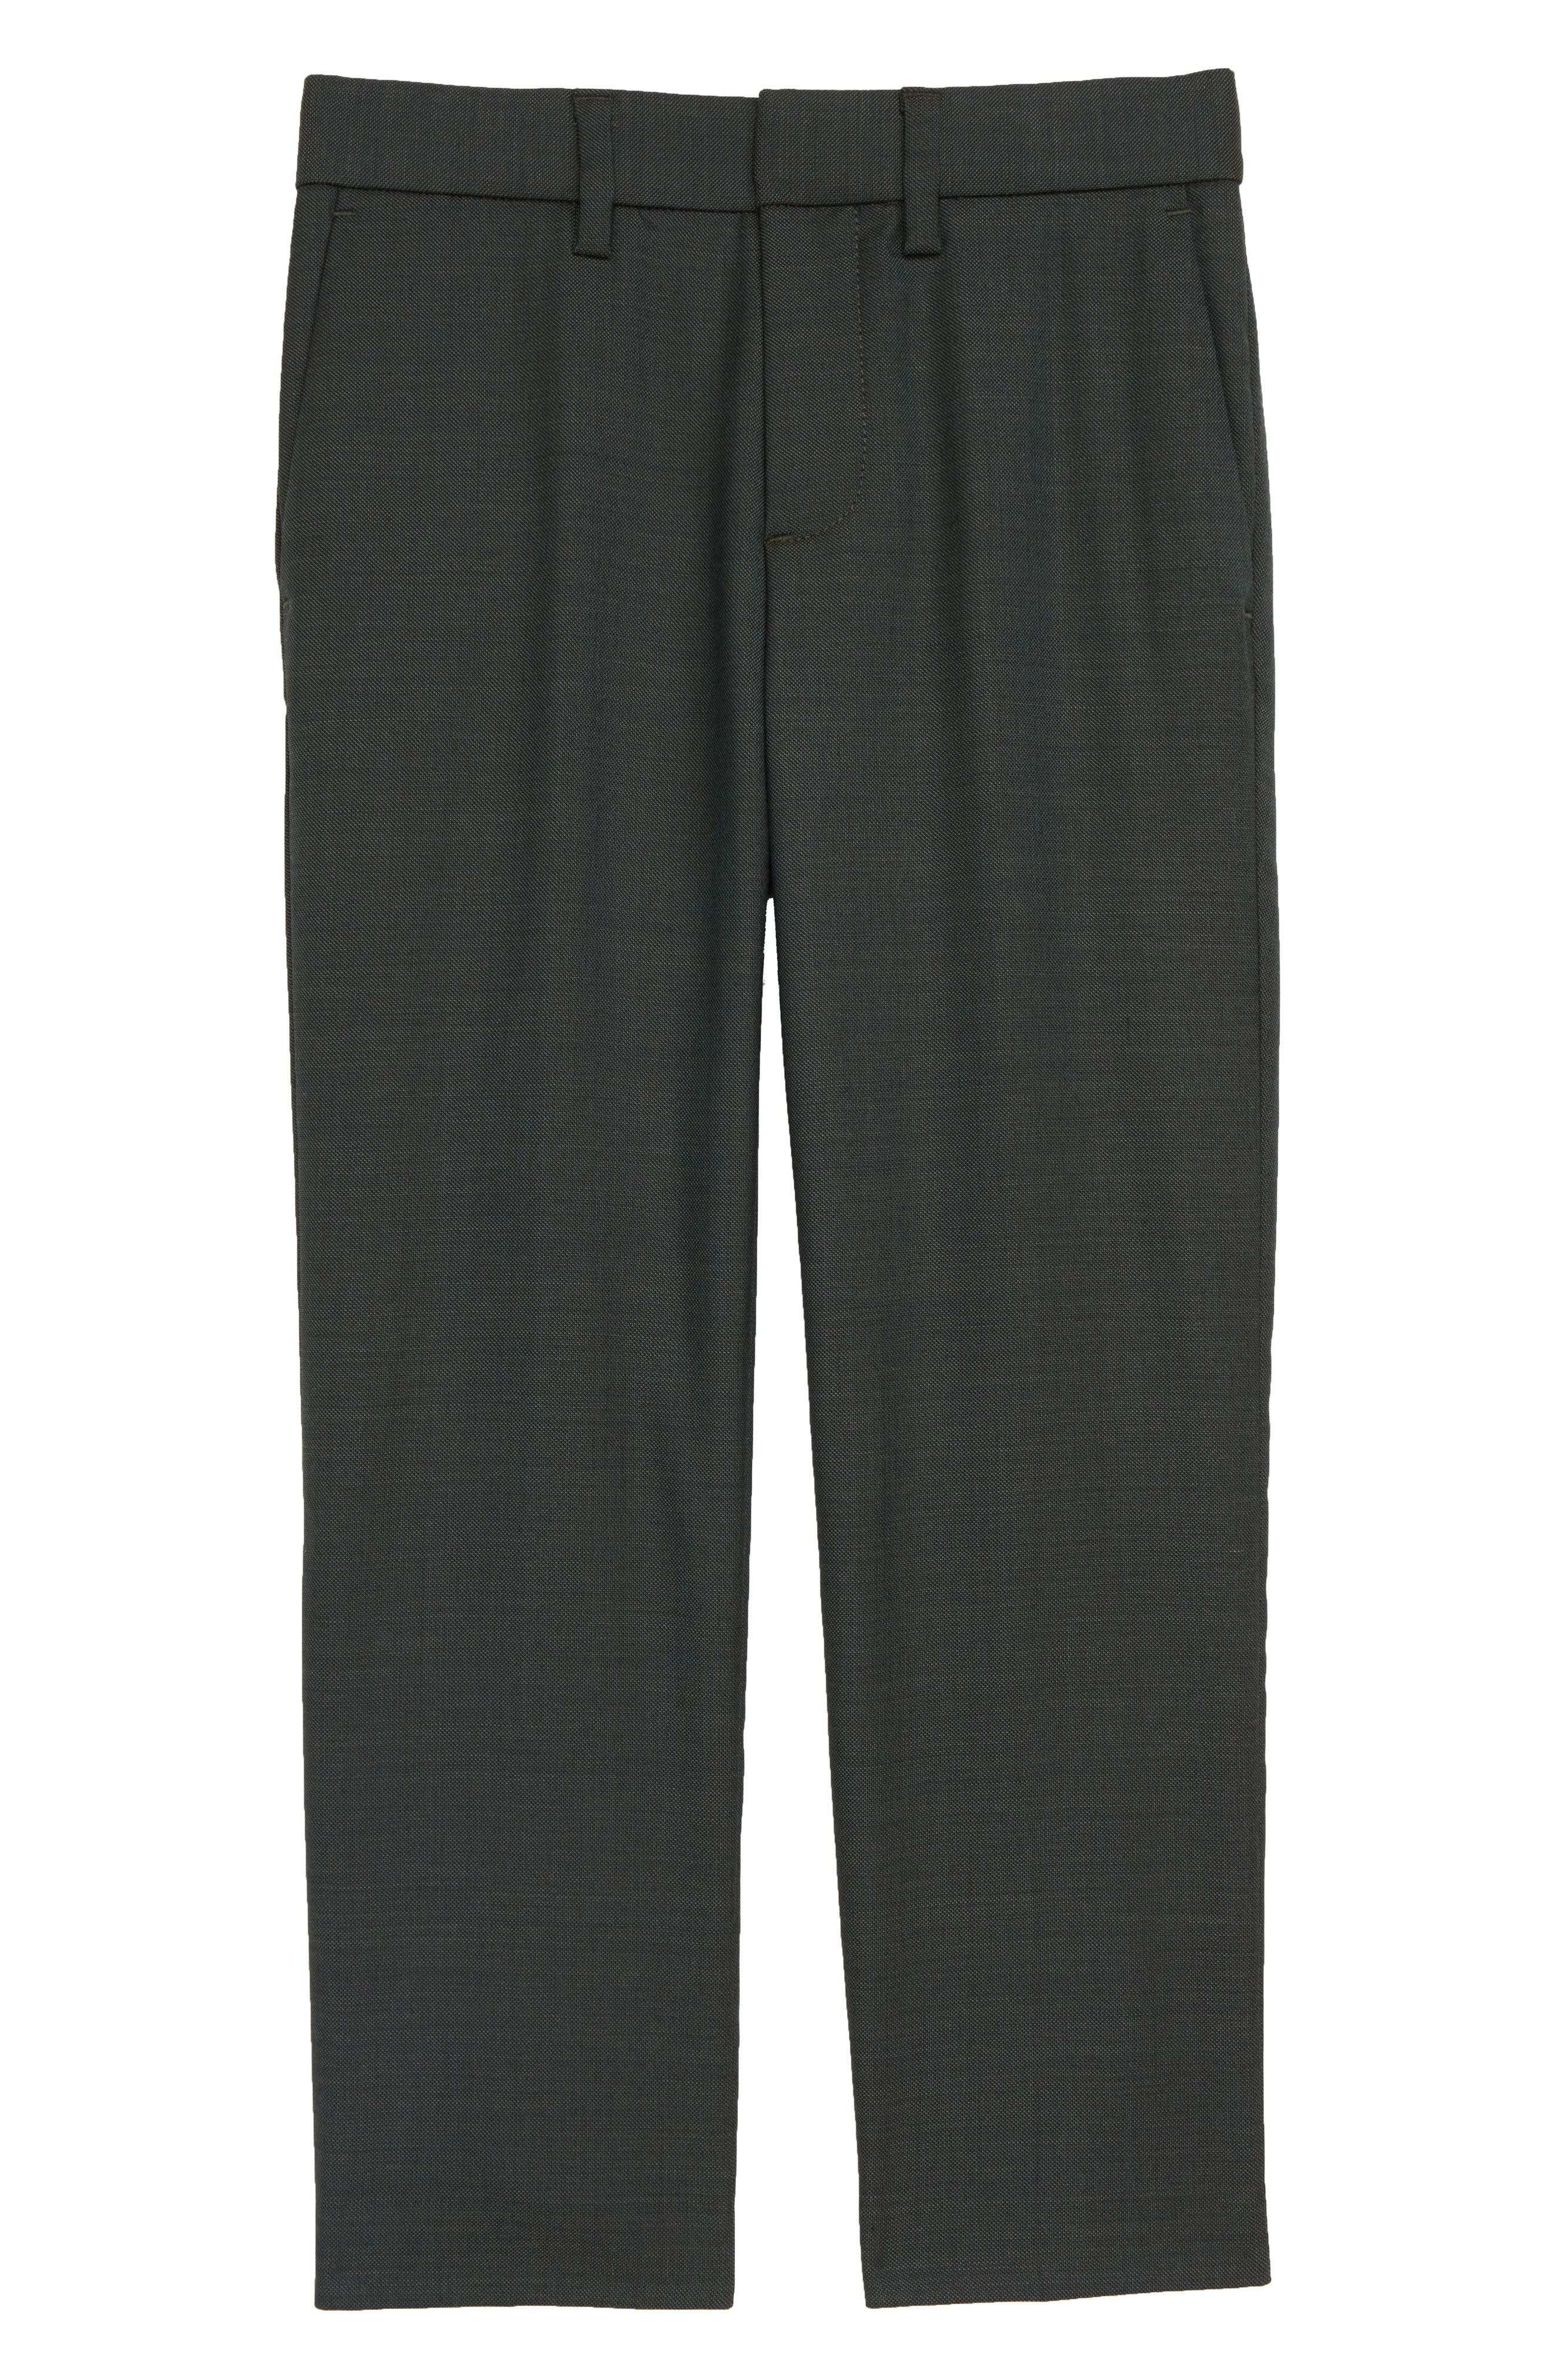 Ludlow Stretch Wool Suit Pants,                         Main,                         color, DARK GREEN